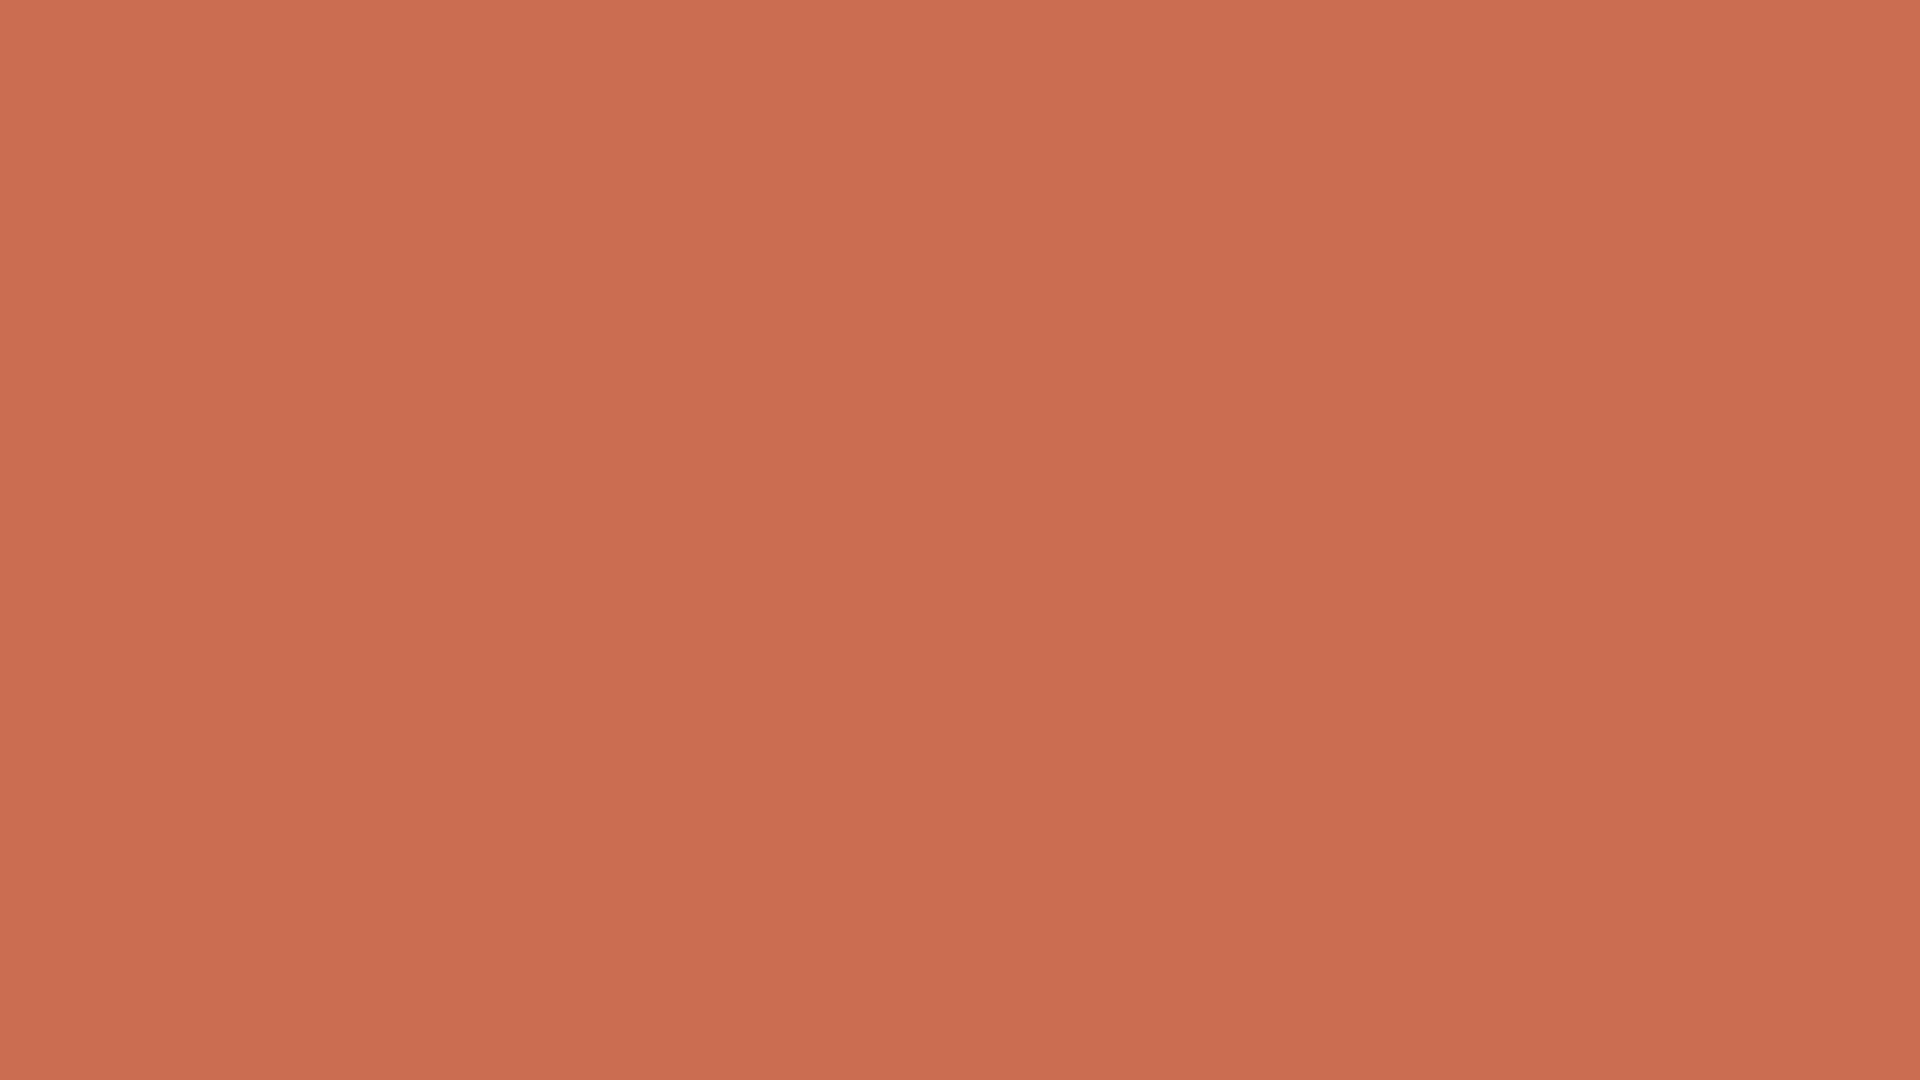 1920x1080 Copper Red Solid Color Background